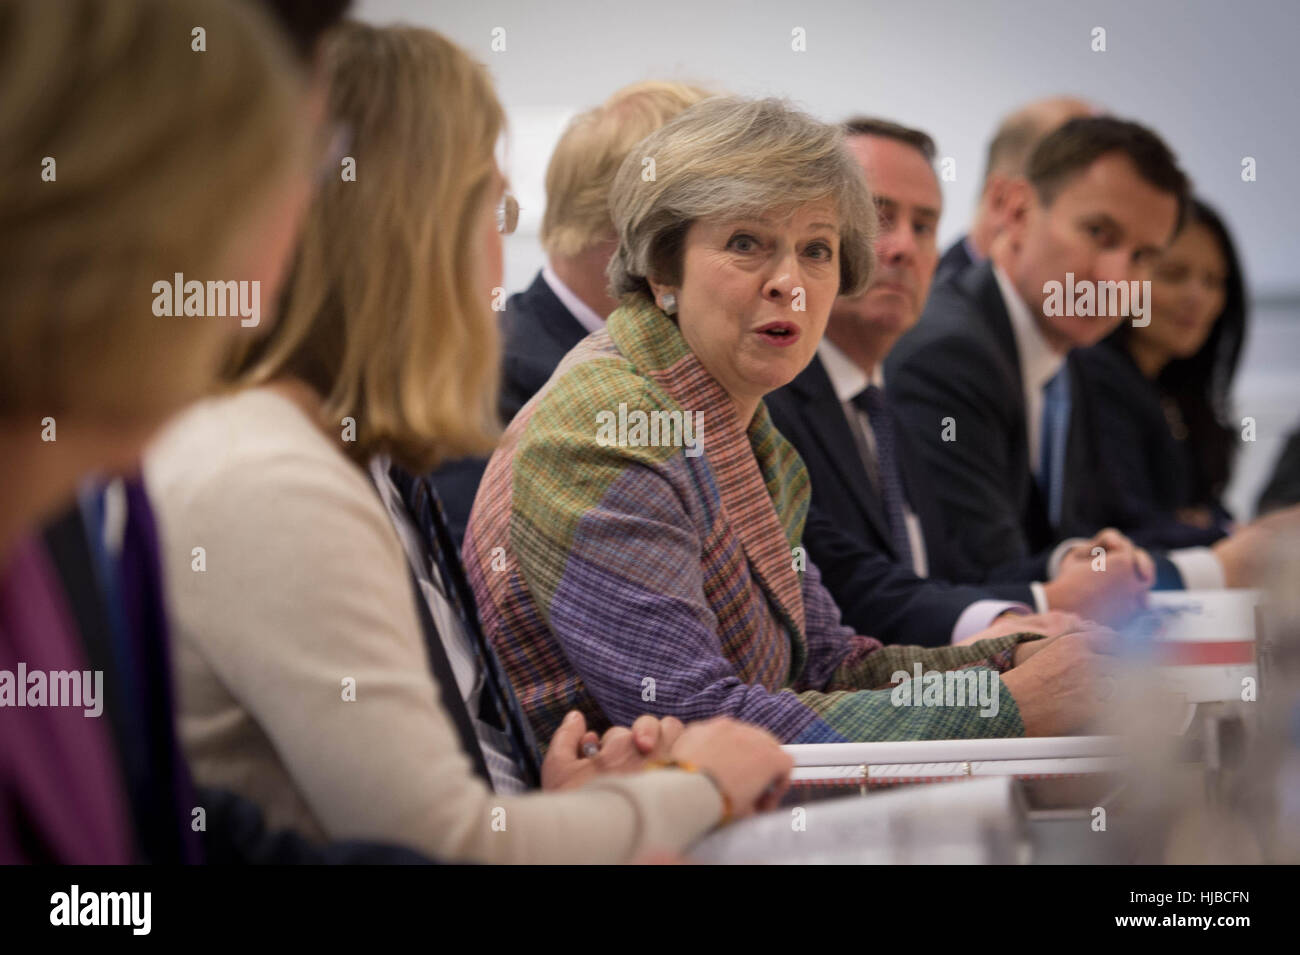 Prime Minister Theresa May Holds A Regional Cabinet Meeting In Stock